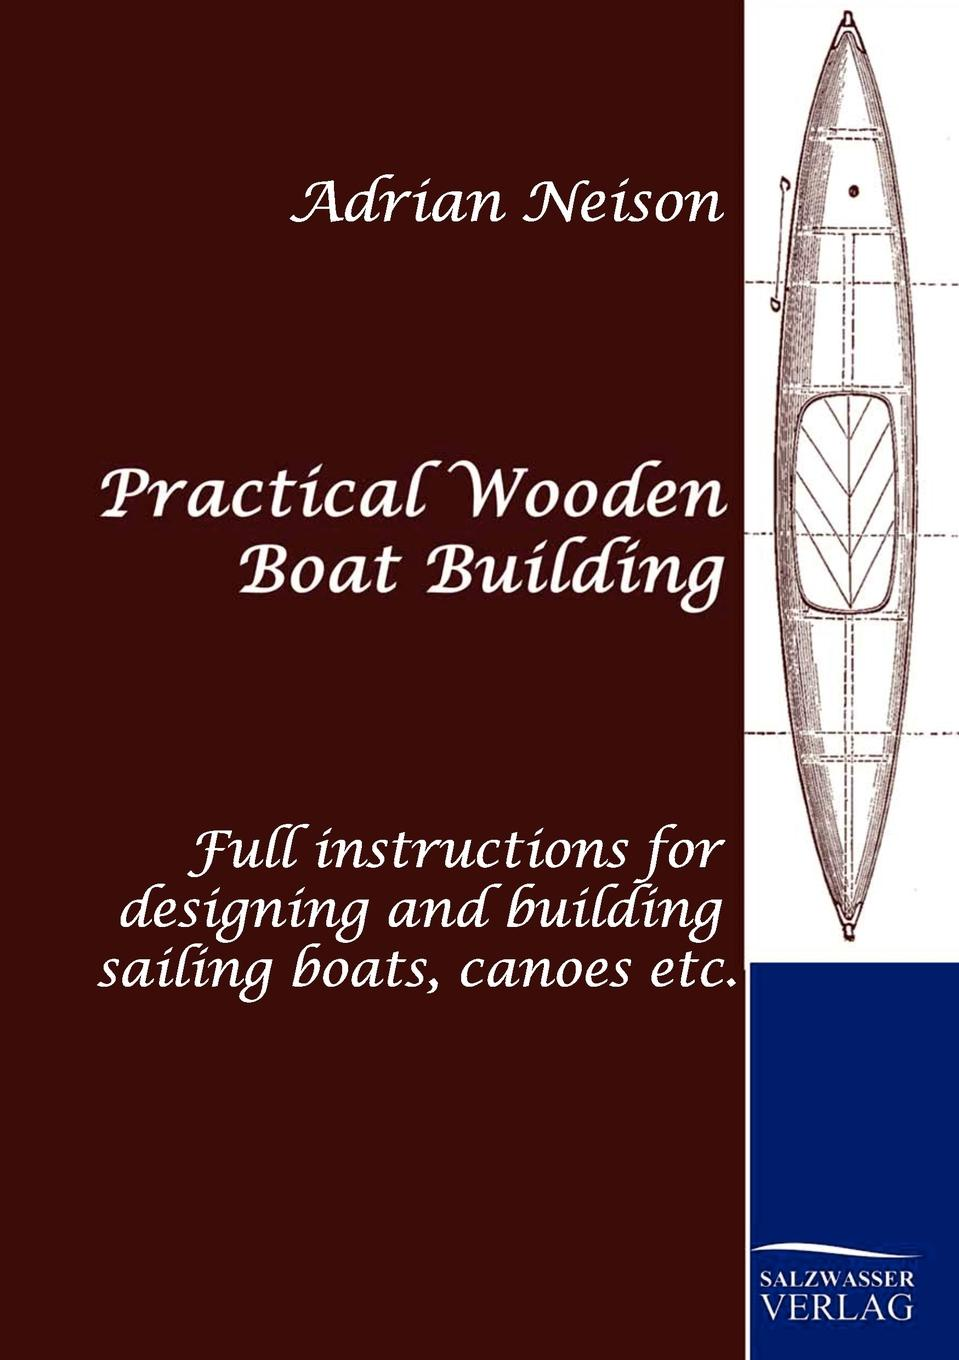 Adrian Neison Practical Wooden Boat Building